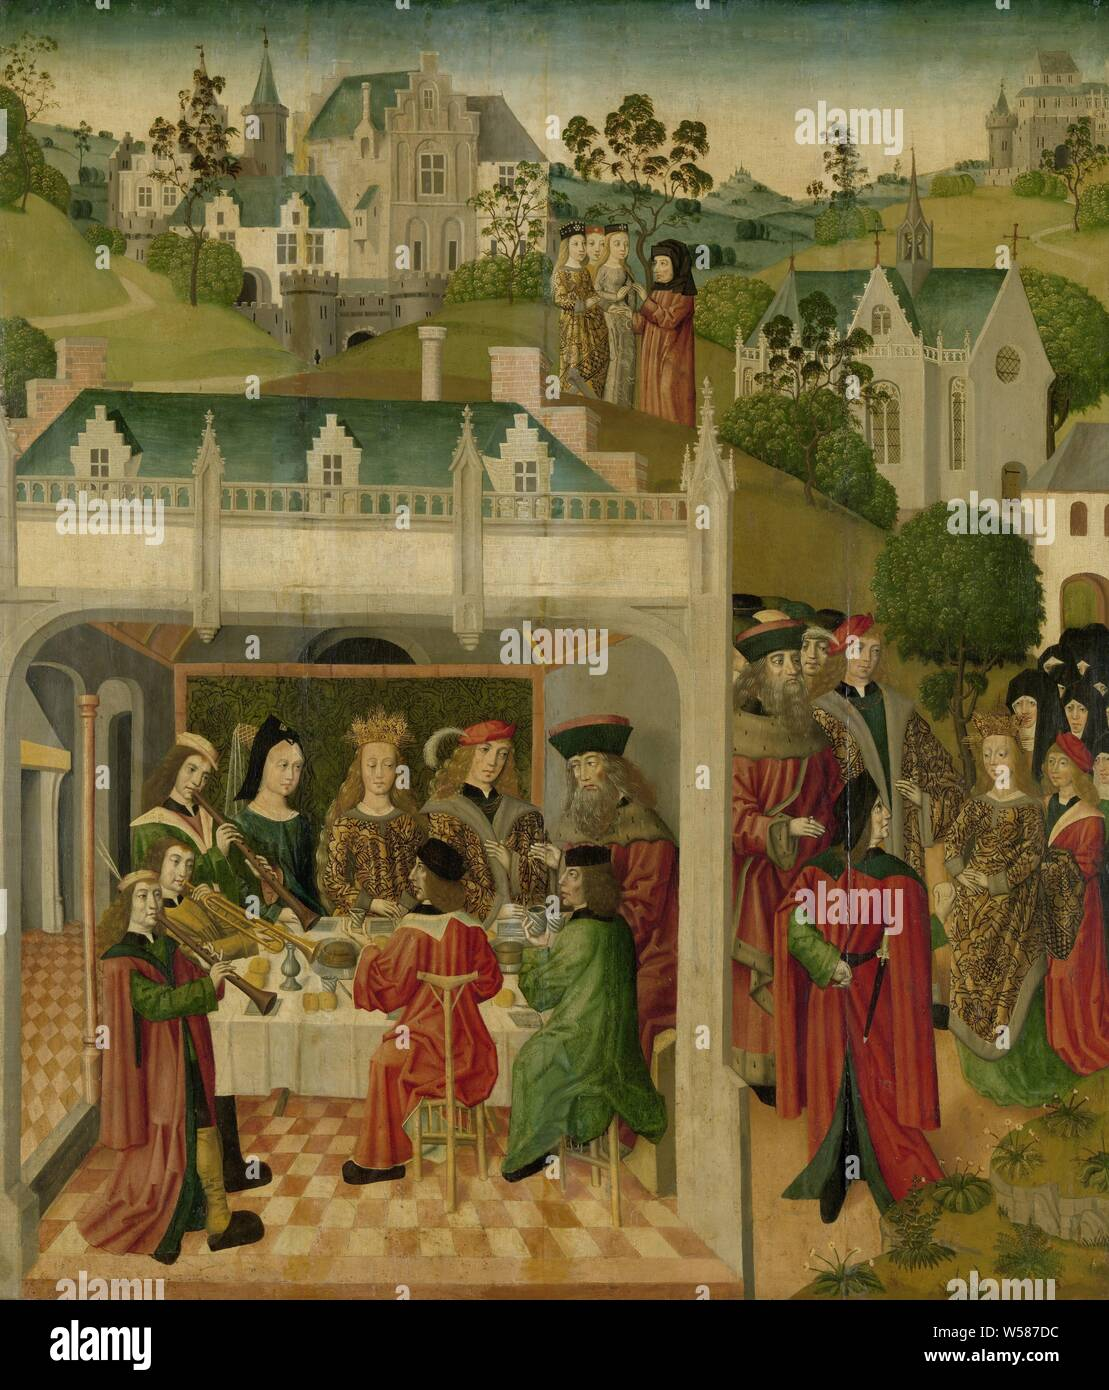 Wedding Feast of Saint Elizabeth of Hungary and Louis of Thuringia in the Wartburg, inner left wing of an altarpiece made for the Great Church in Dordrecht, Scenes from the life of Saint Elisabeth of Hungary. On the right in the foreground the engagement with Duke Lodewijk van Thüringen and Hessen in the garden. On the left the wedding supper on the Wartburg in which also King Andreas, the father of the bride, and the mother of the groom participated. Three musicians with flutes and a trumpet make music at the banquet. In the background a landscape with castles and the buildings of a city - Stock Photo